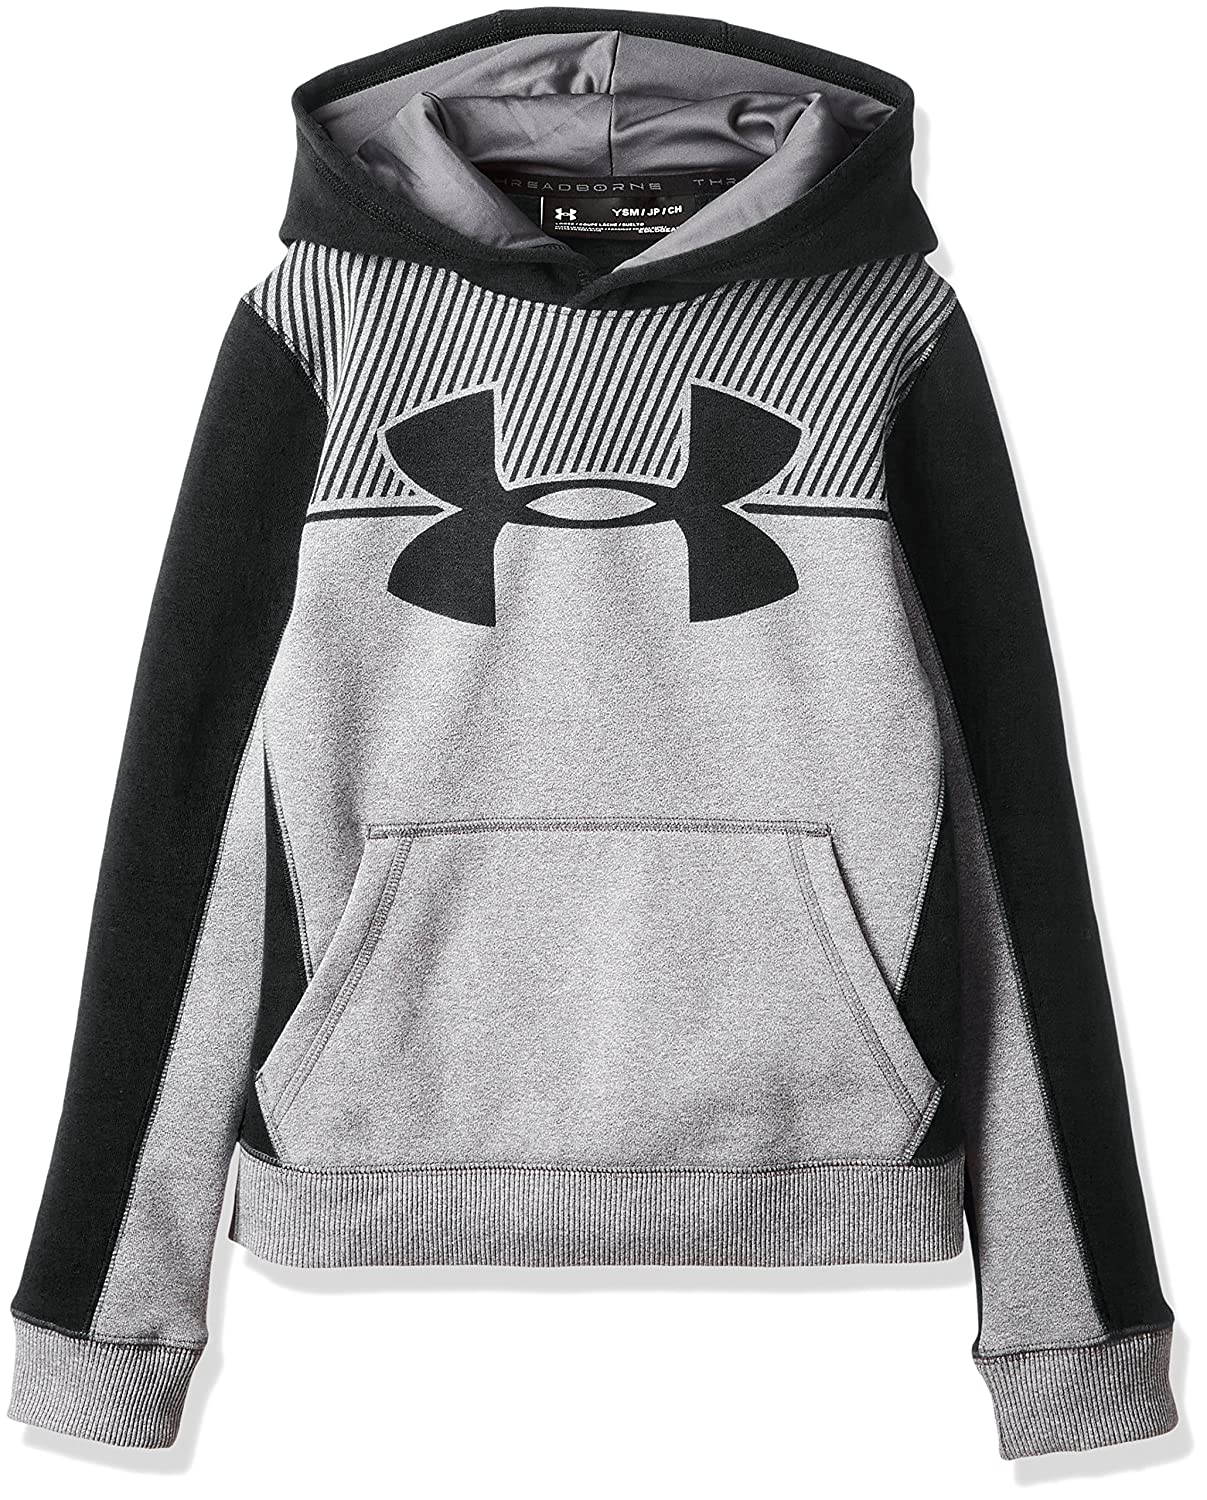 Under Armour Junior Boys EU Cotton Fleece Pullover Hoodie UA Kids Sports Top